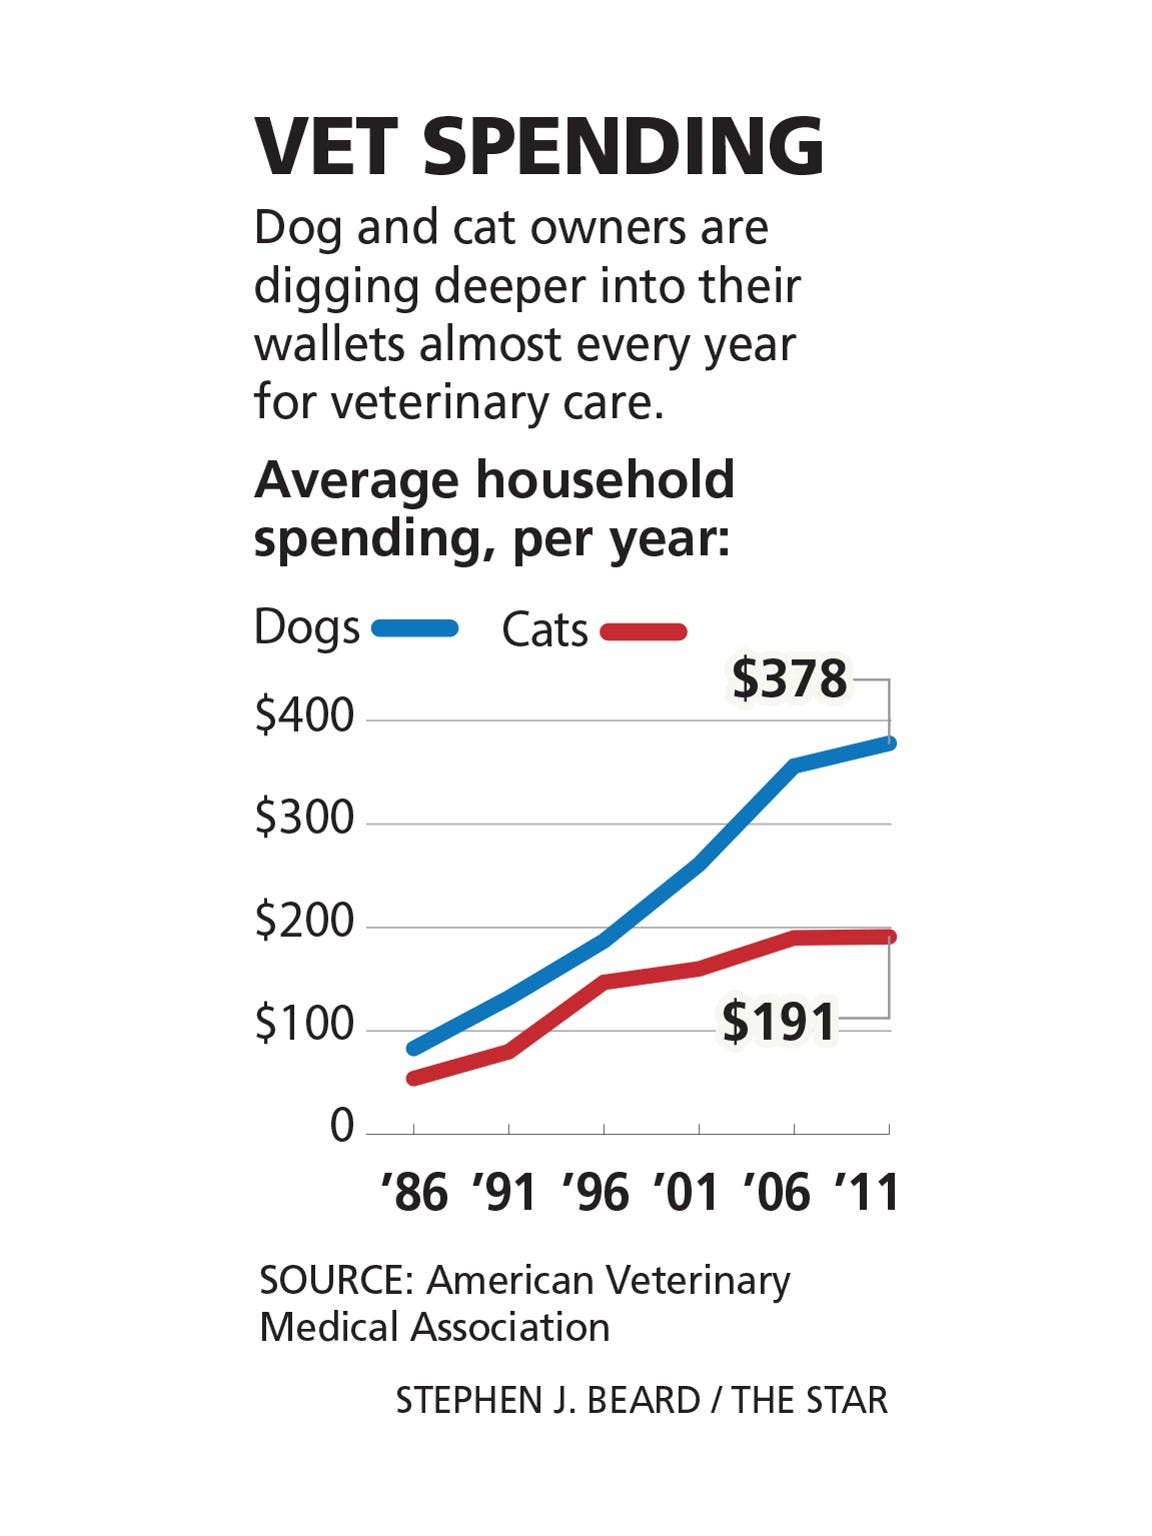 Dog and cat owners are digging deeper into their wallets